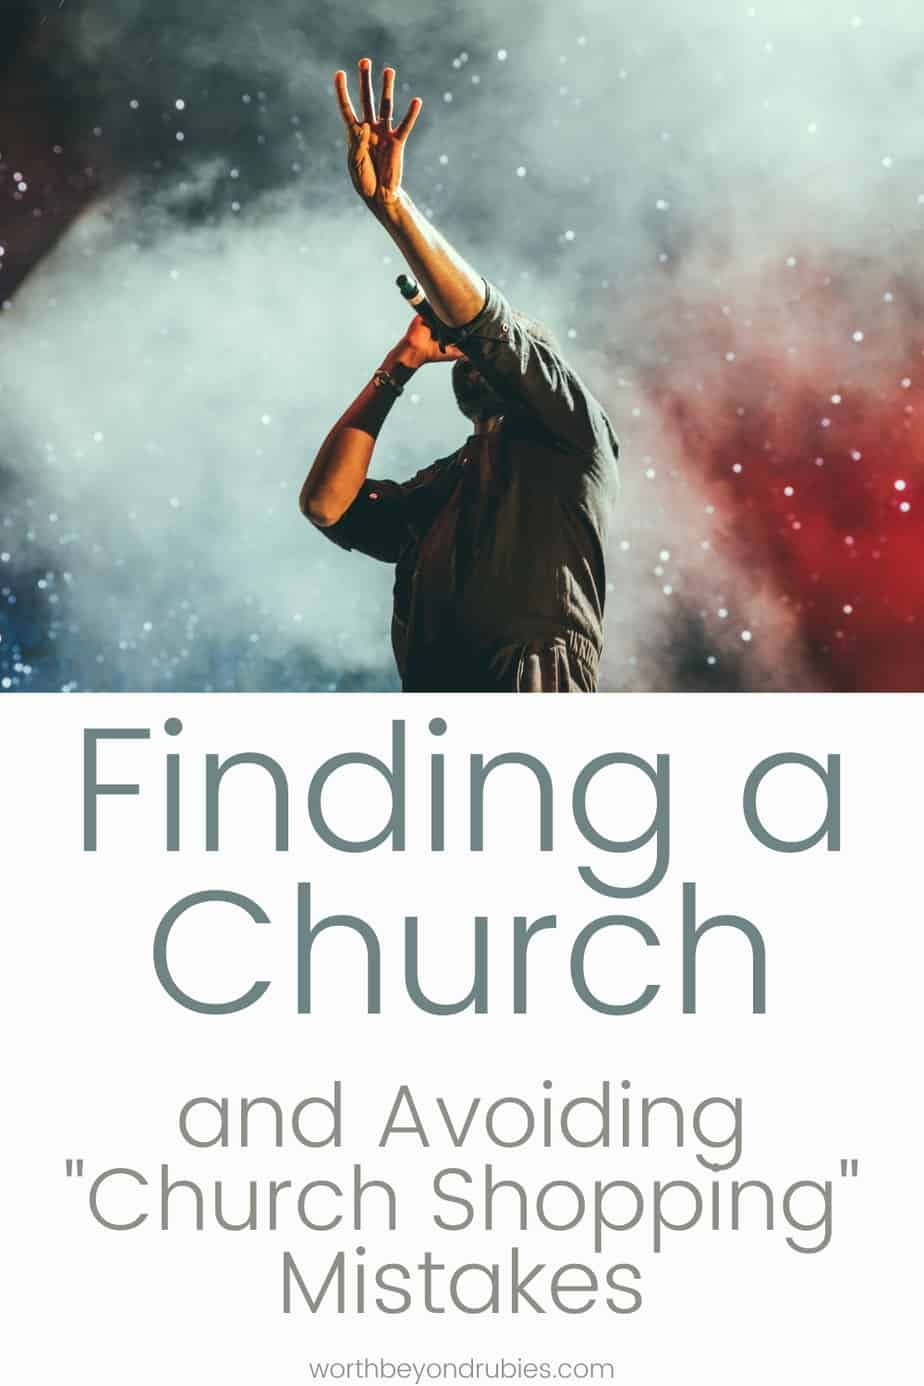 an image of a worship leader and text that says Finding a Church and Avoiding Church Shopping Mistakes